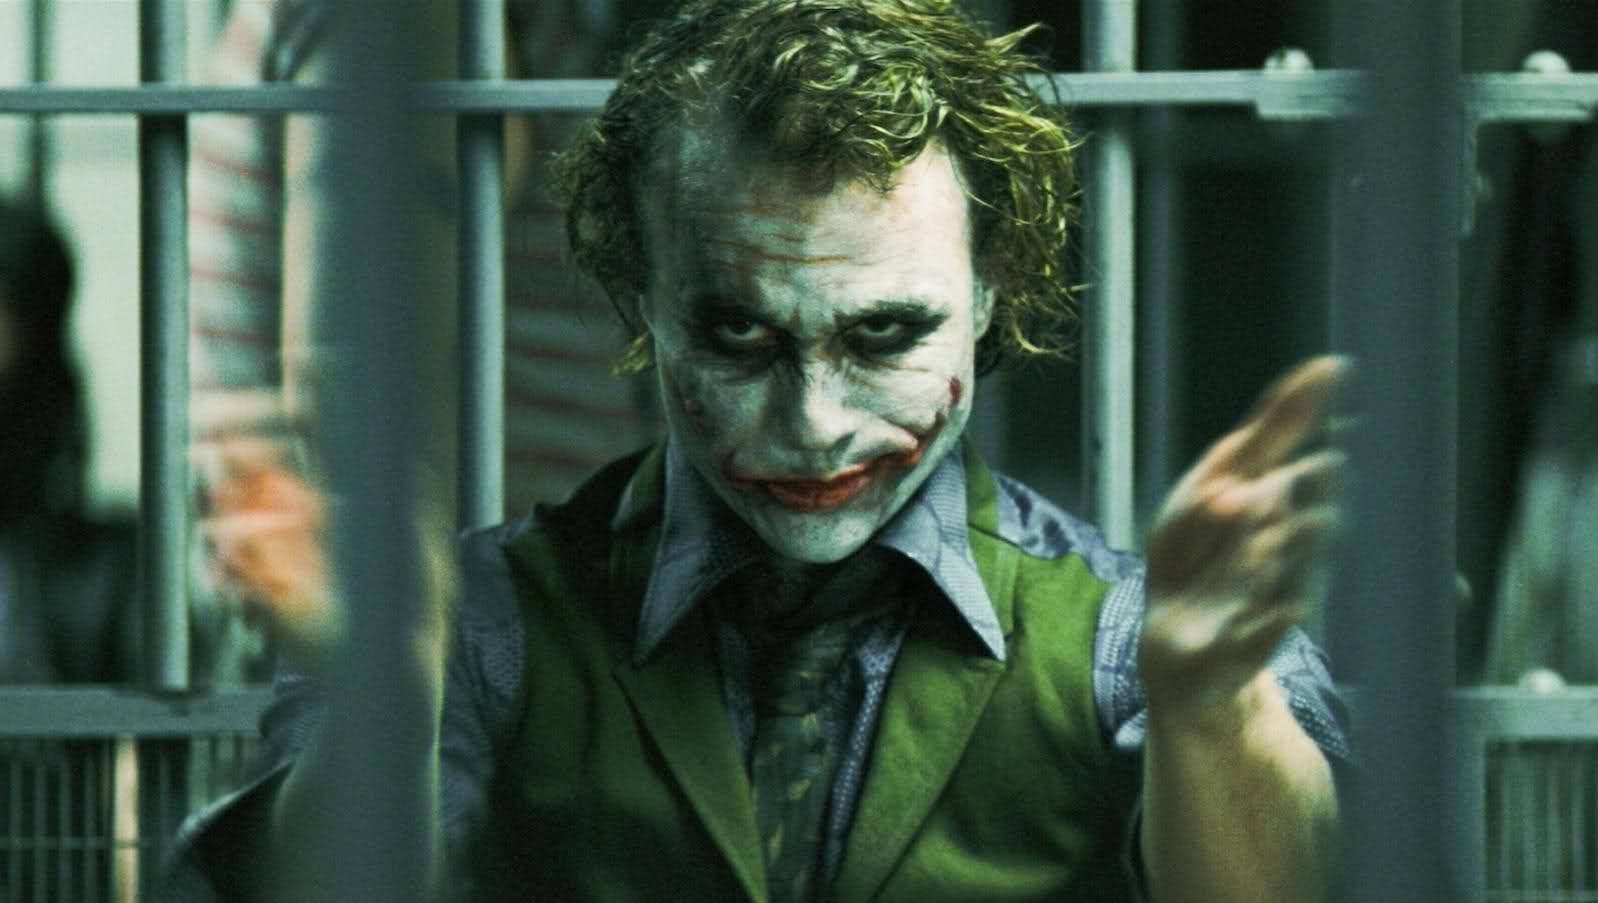 Joker clapping, tinypic